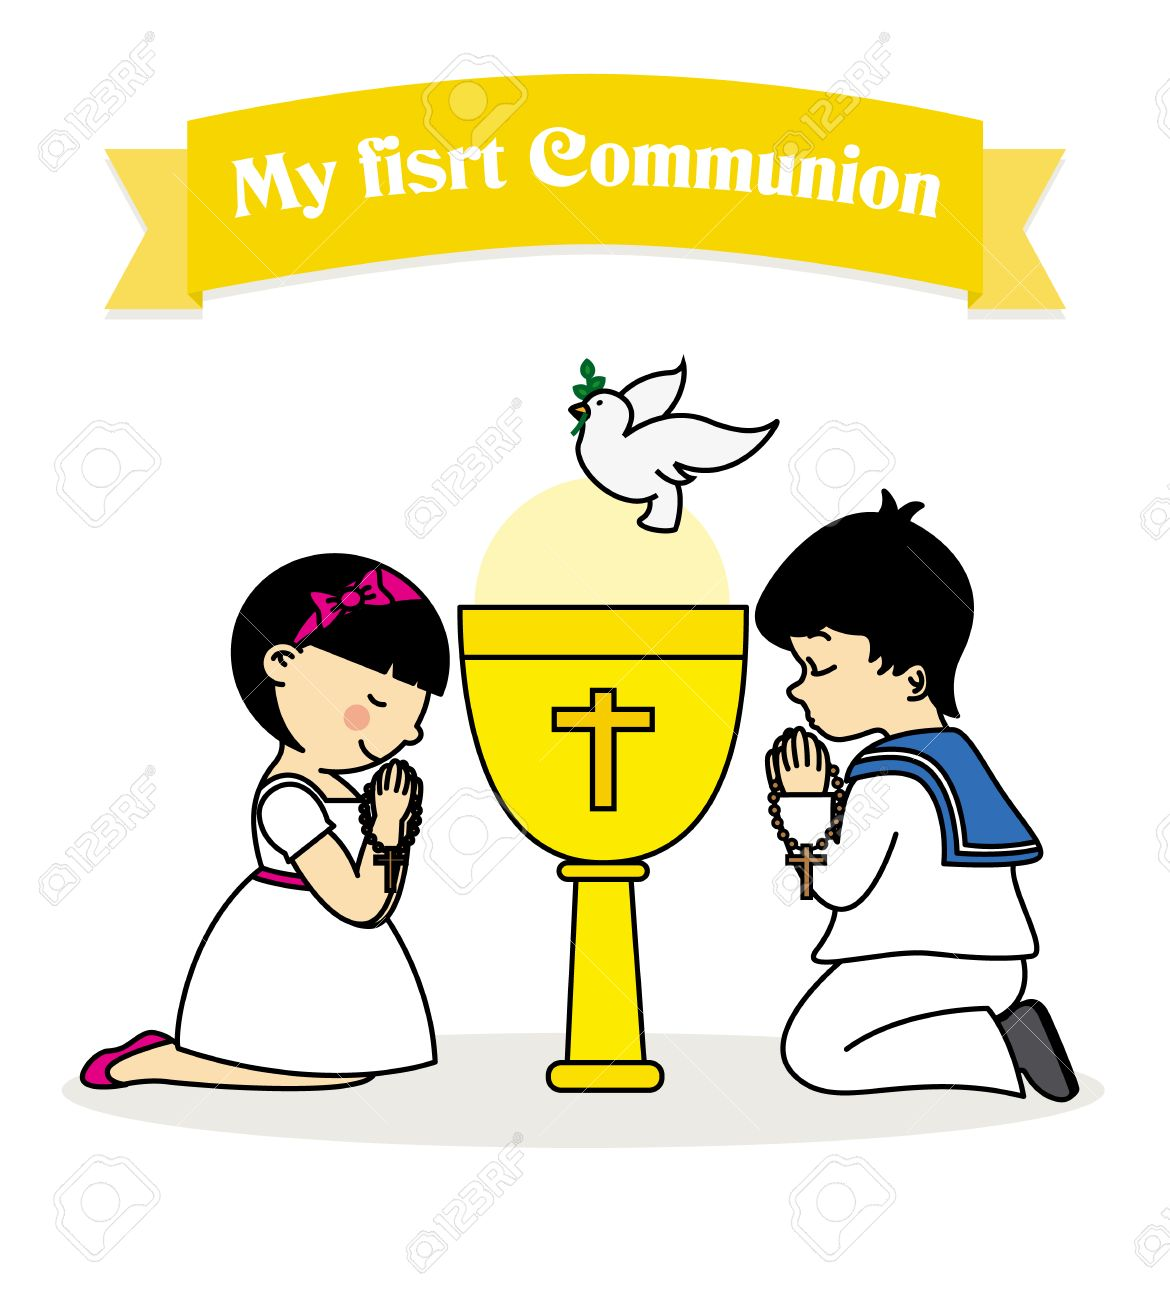 my first communion. Boy and girl praying together with a calyx - 54420959